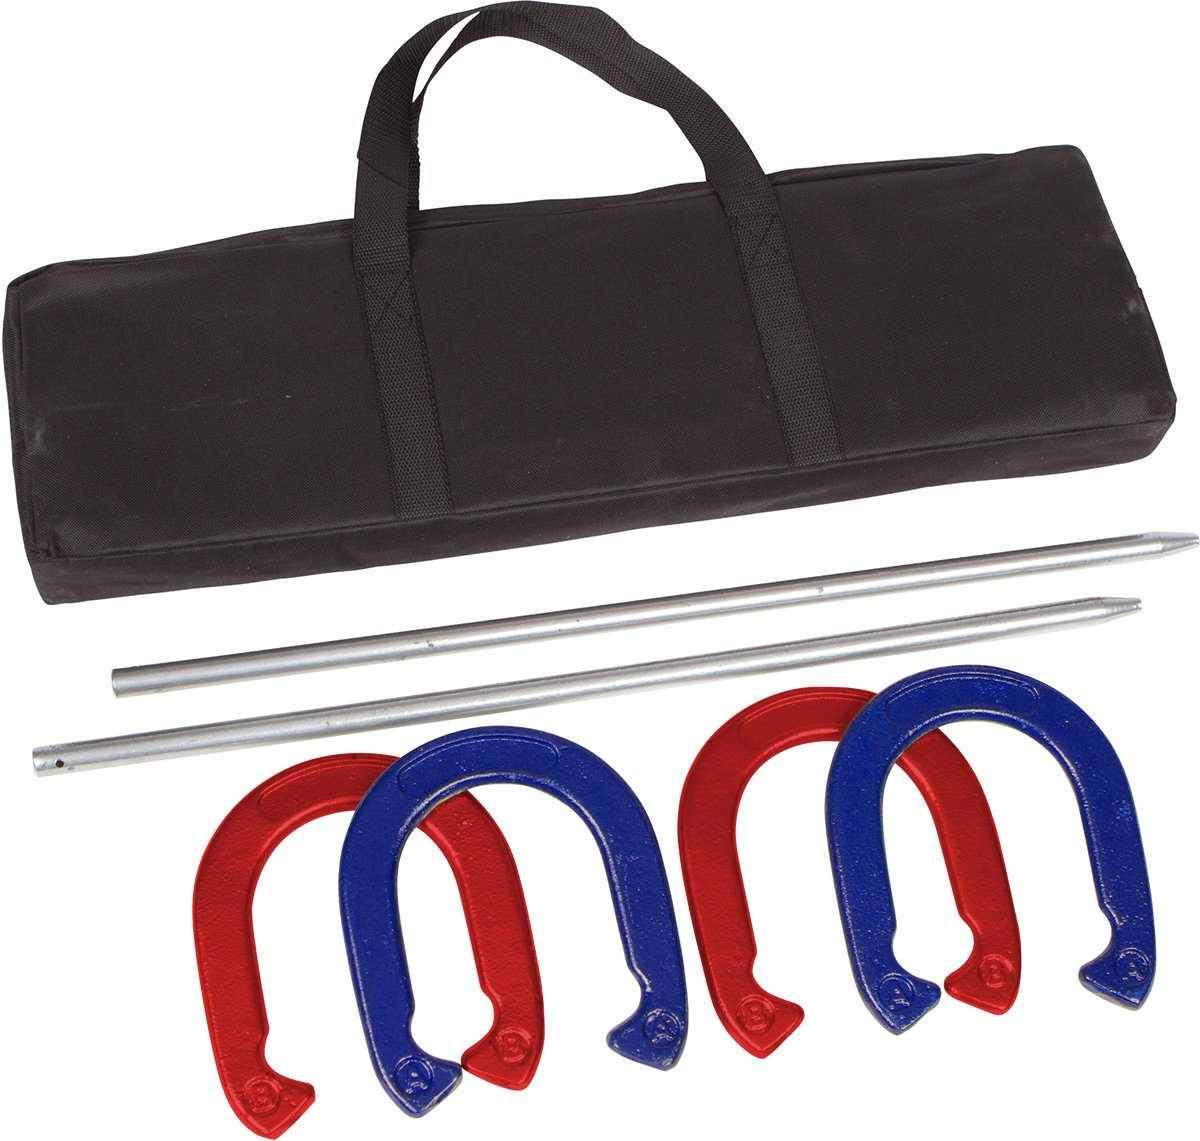 Trademark Innovations Pro Horseshoe Set - Powder Coated Steel (Red and Blue)